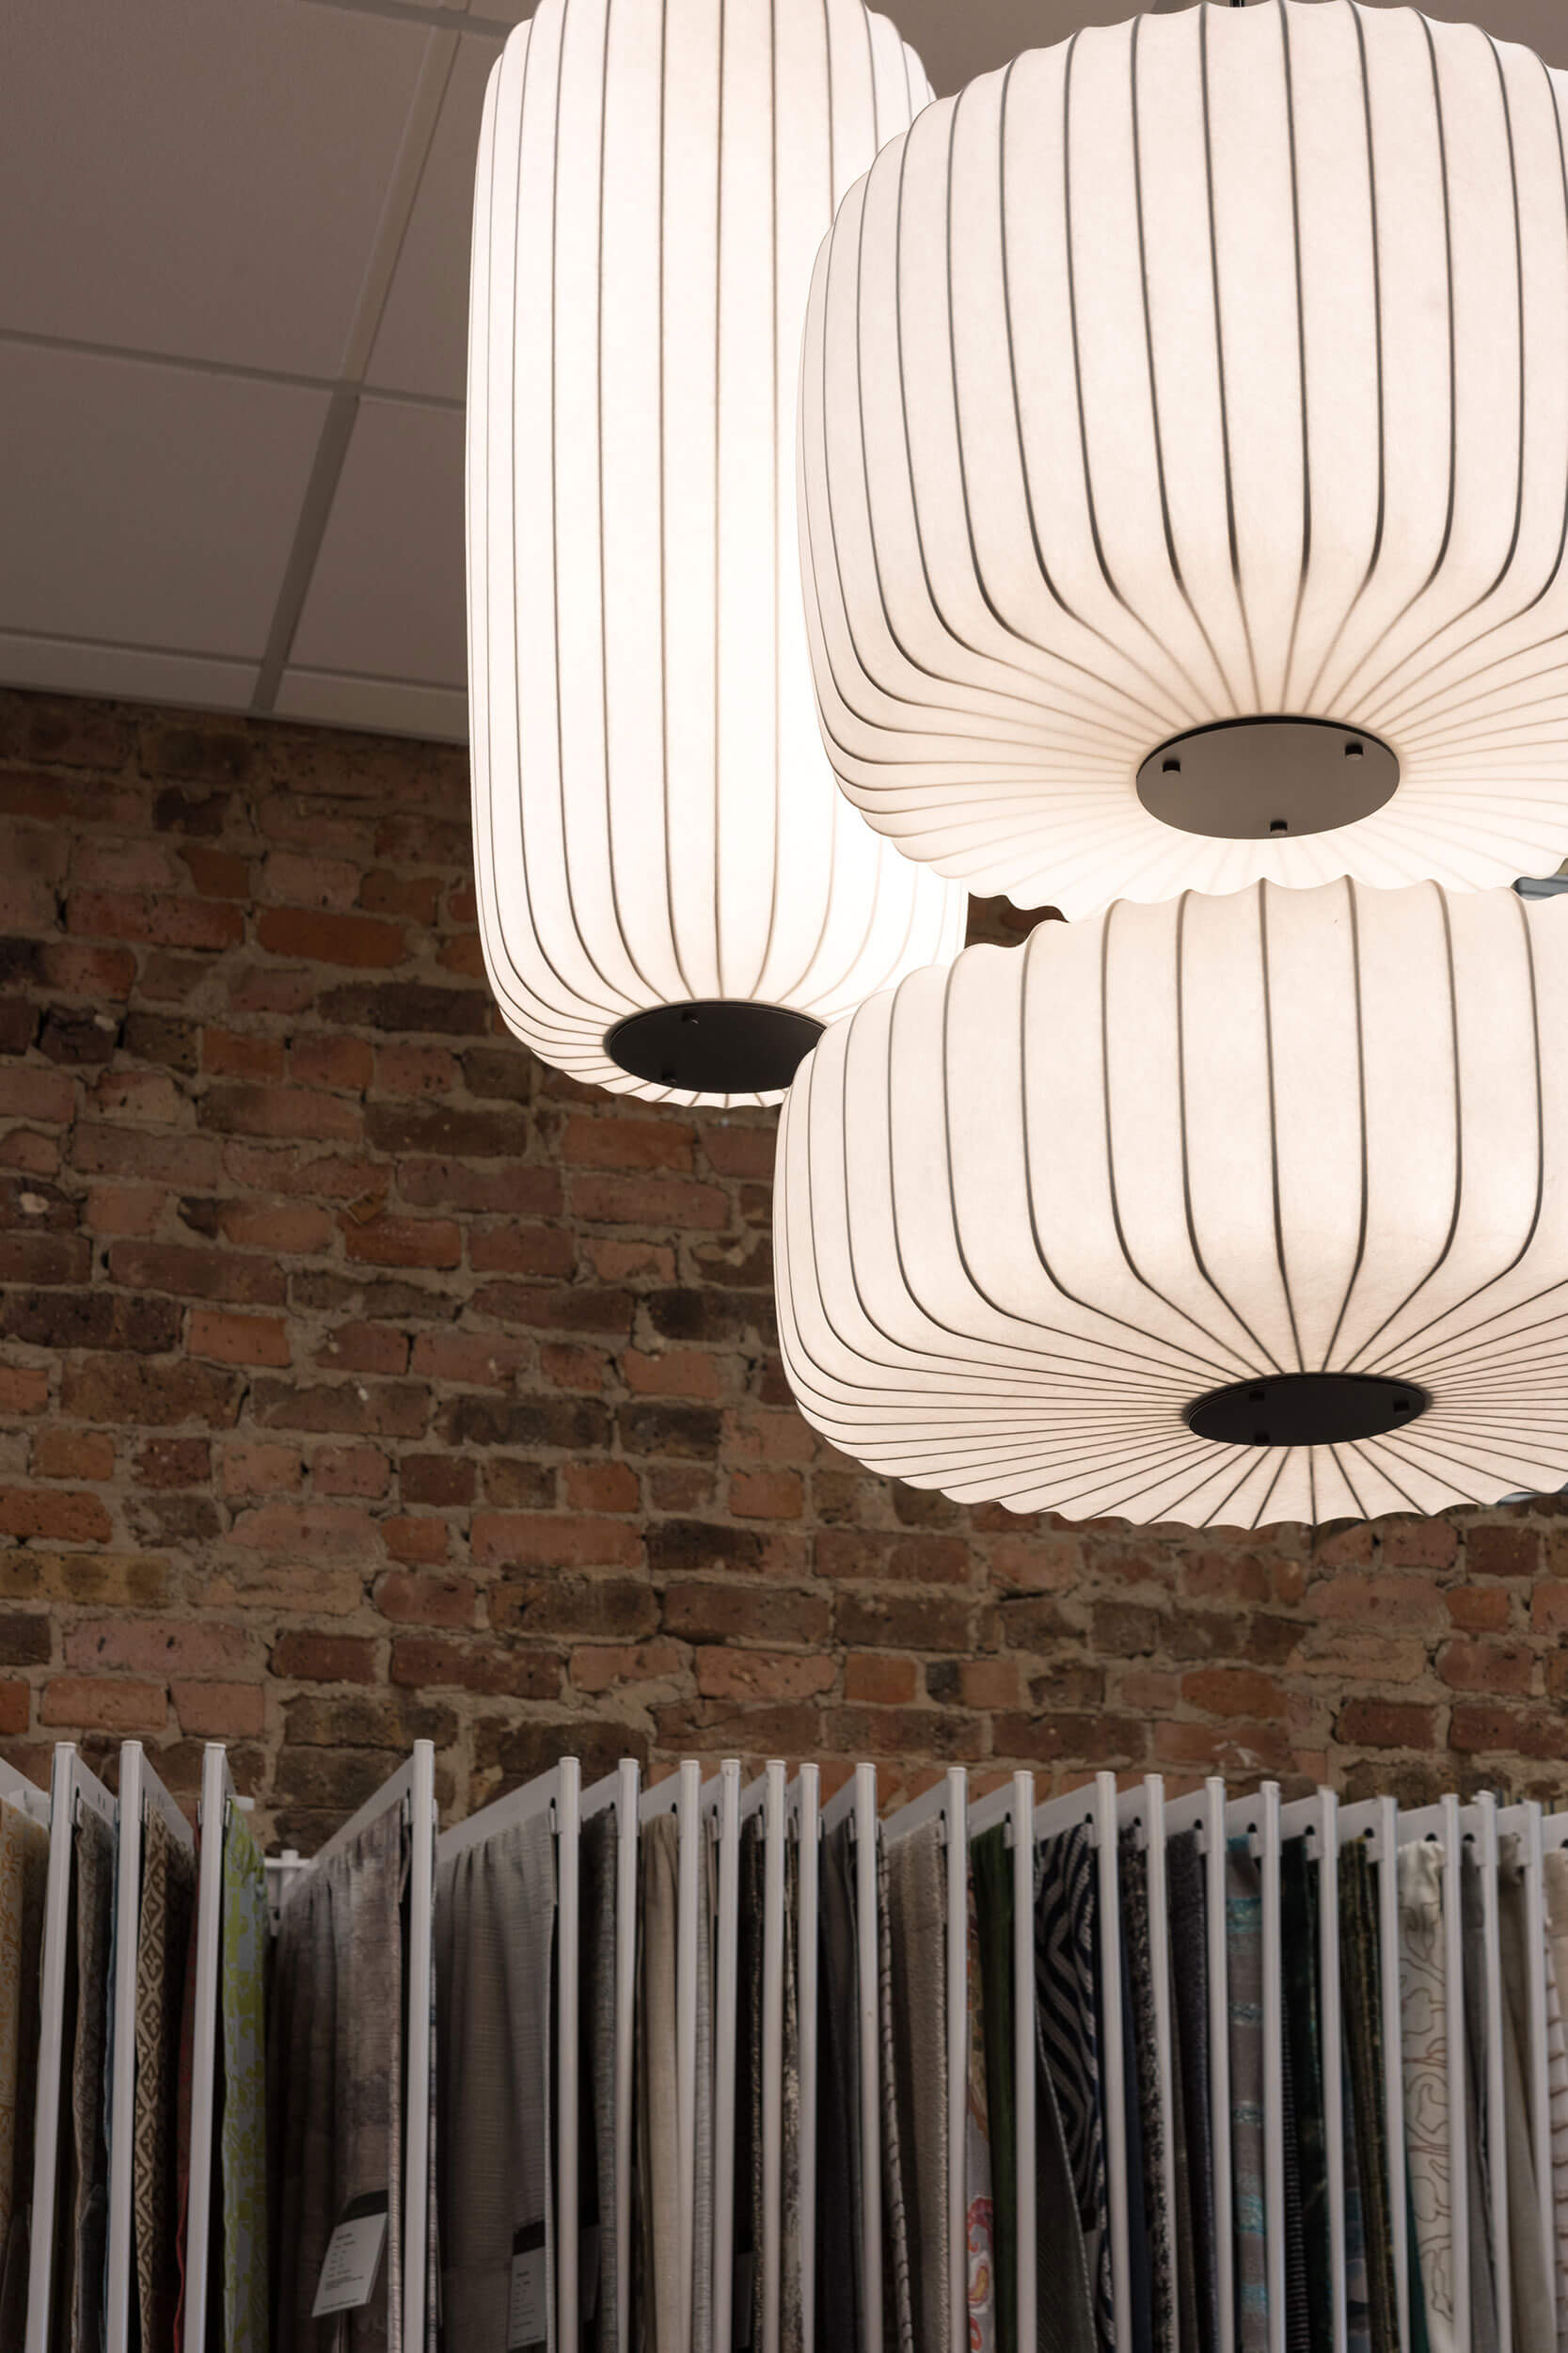 To, Te and M Pendant Lights in front of fabric samples